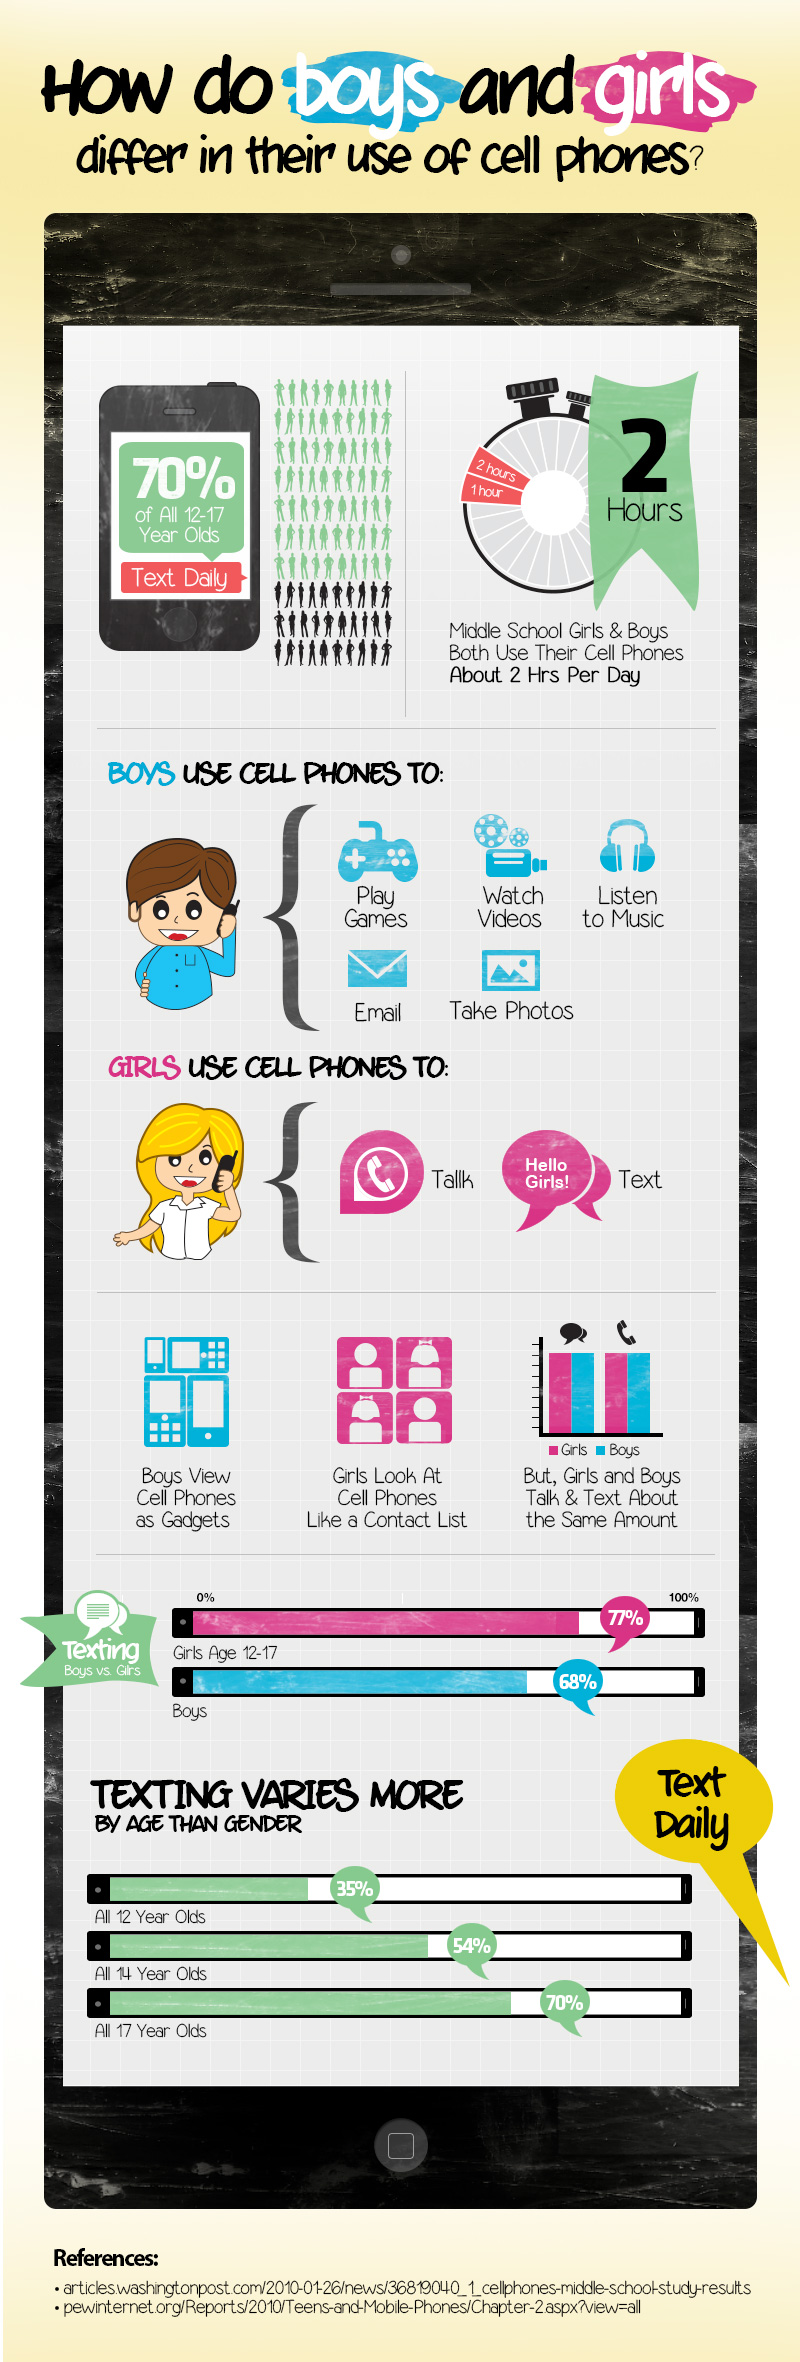 Cell-Phone-Use-Girls-vs-Boys